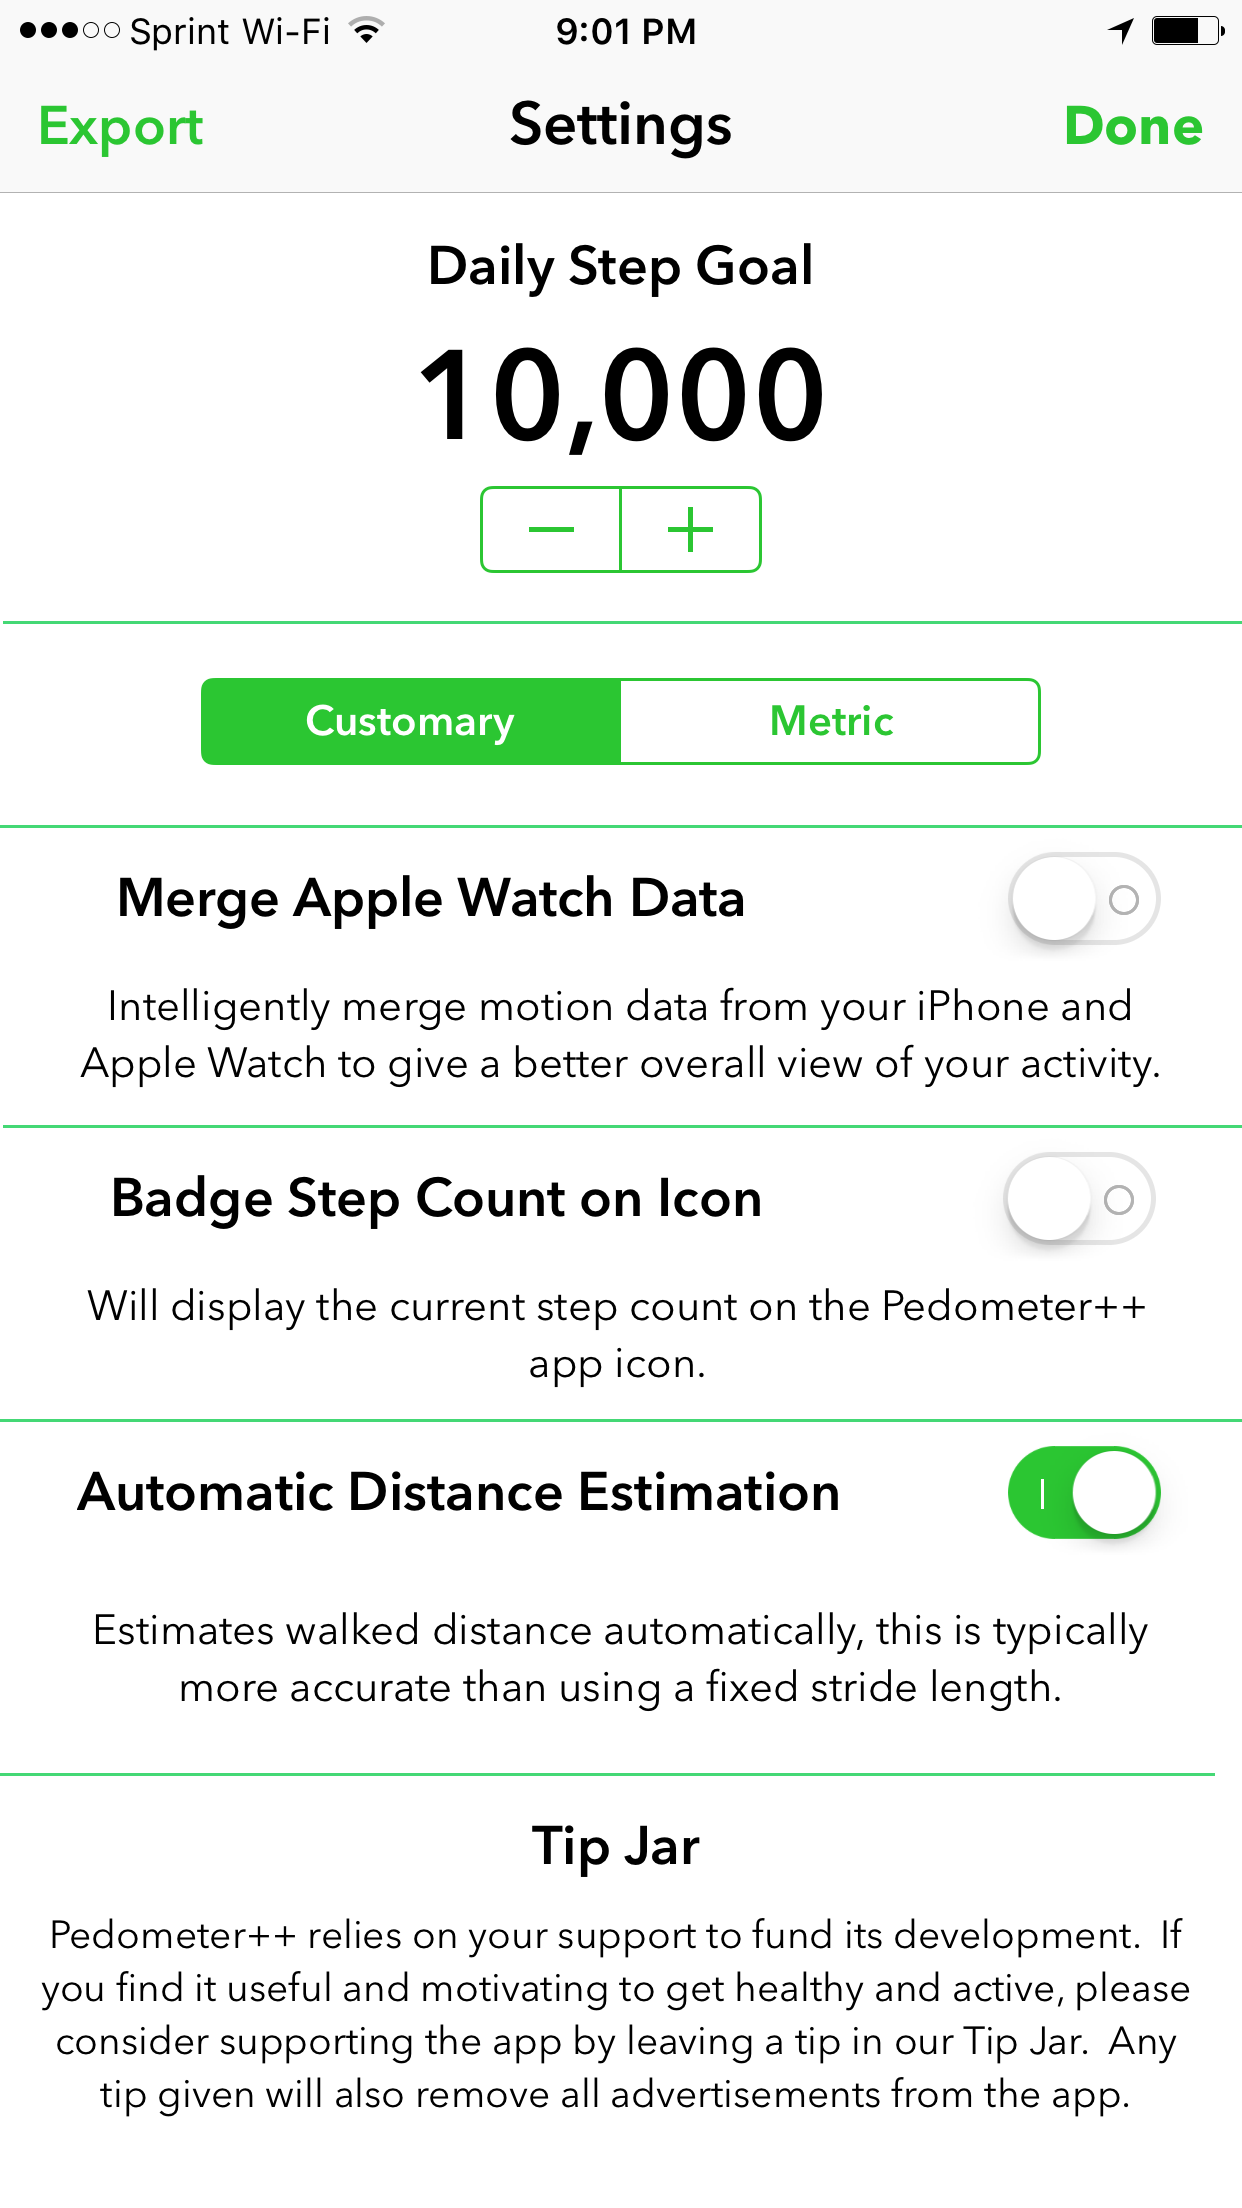 Pedometer++ settings screen